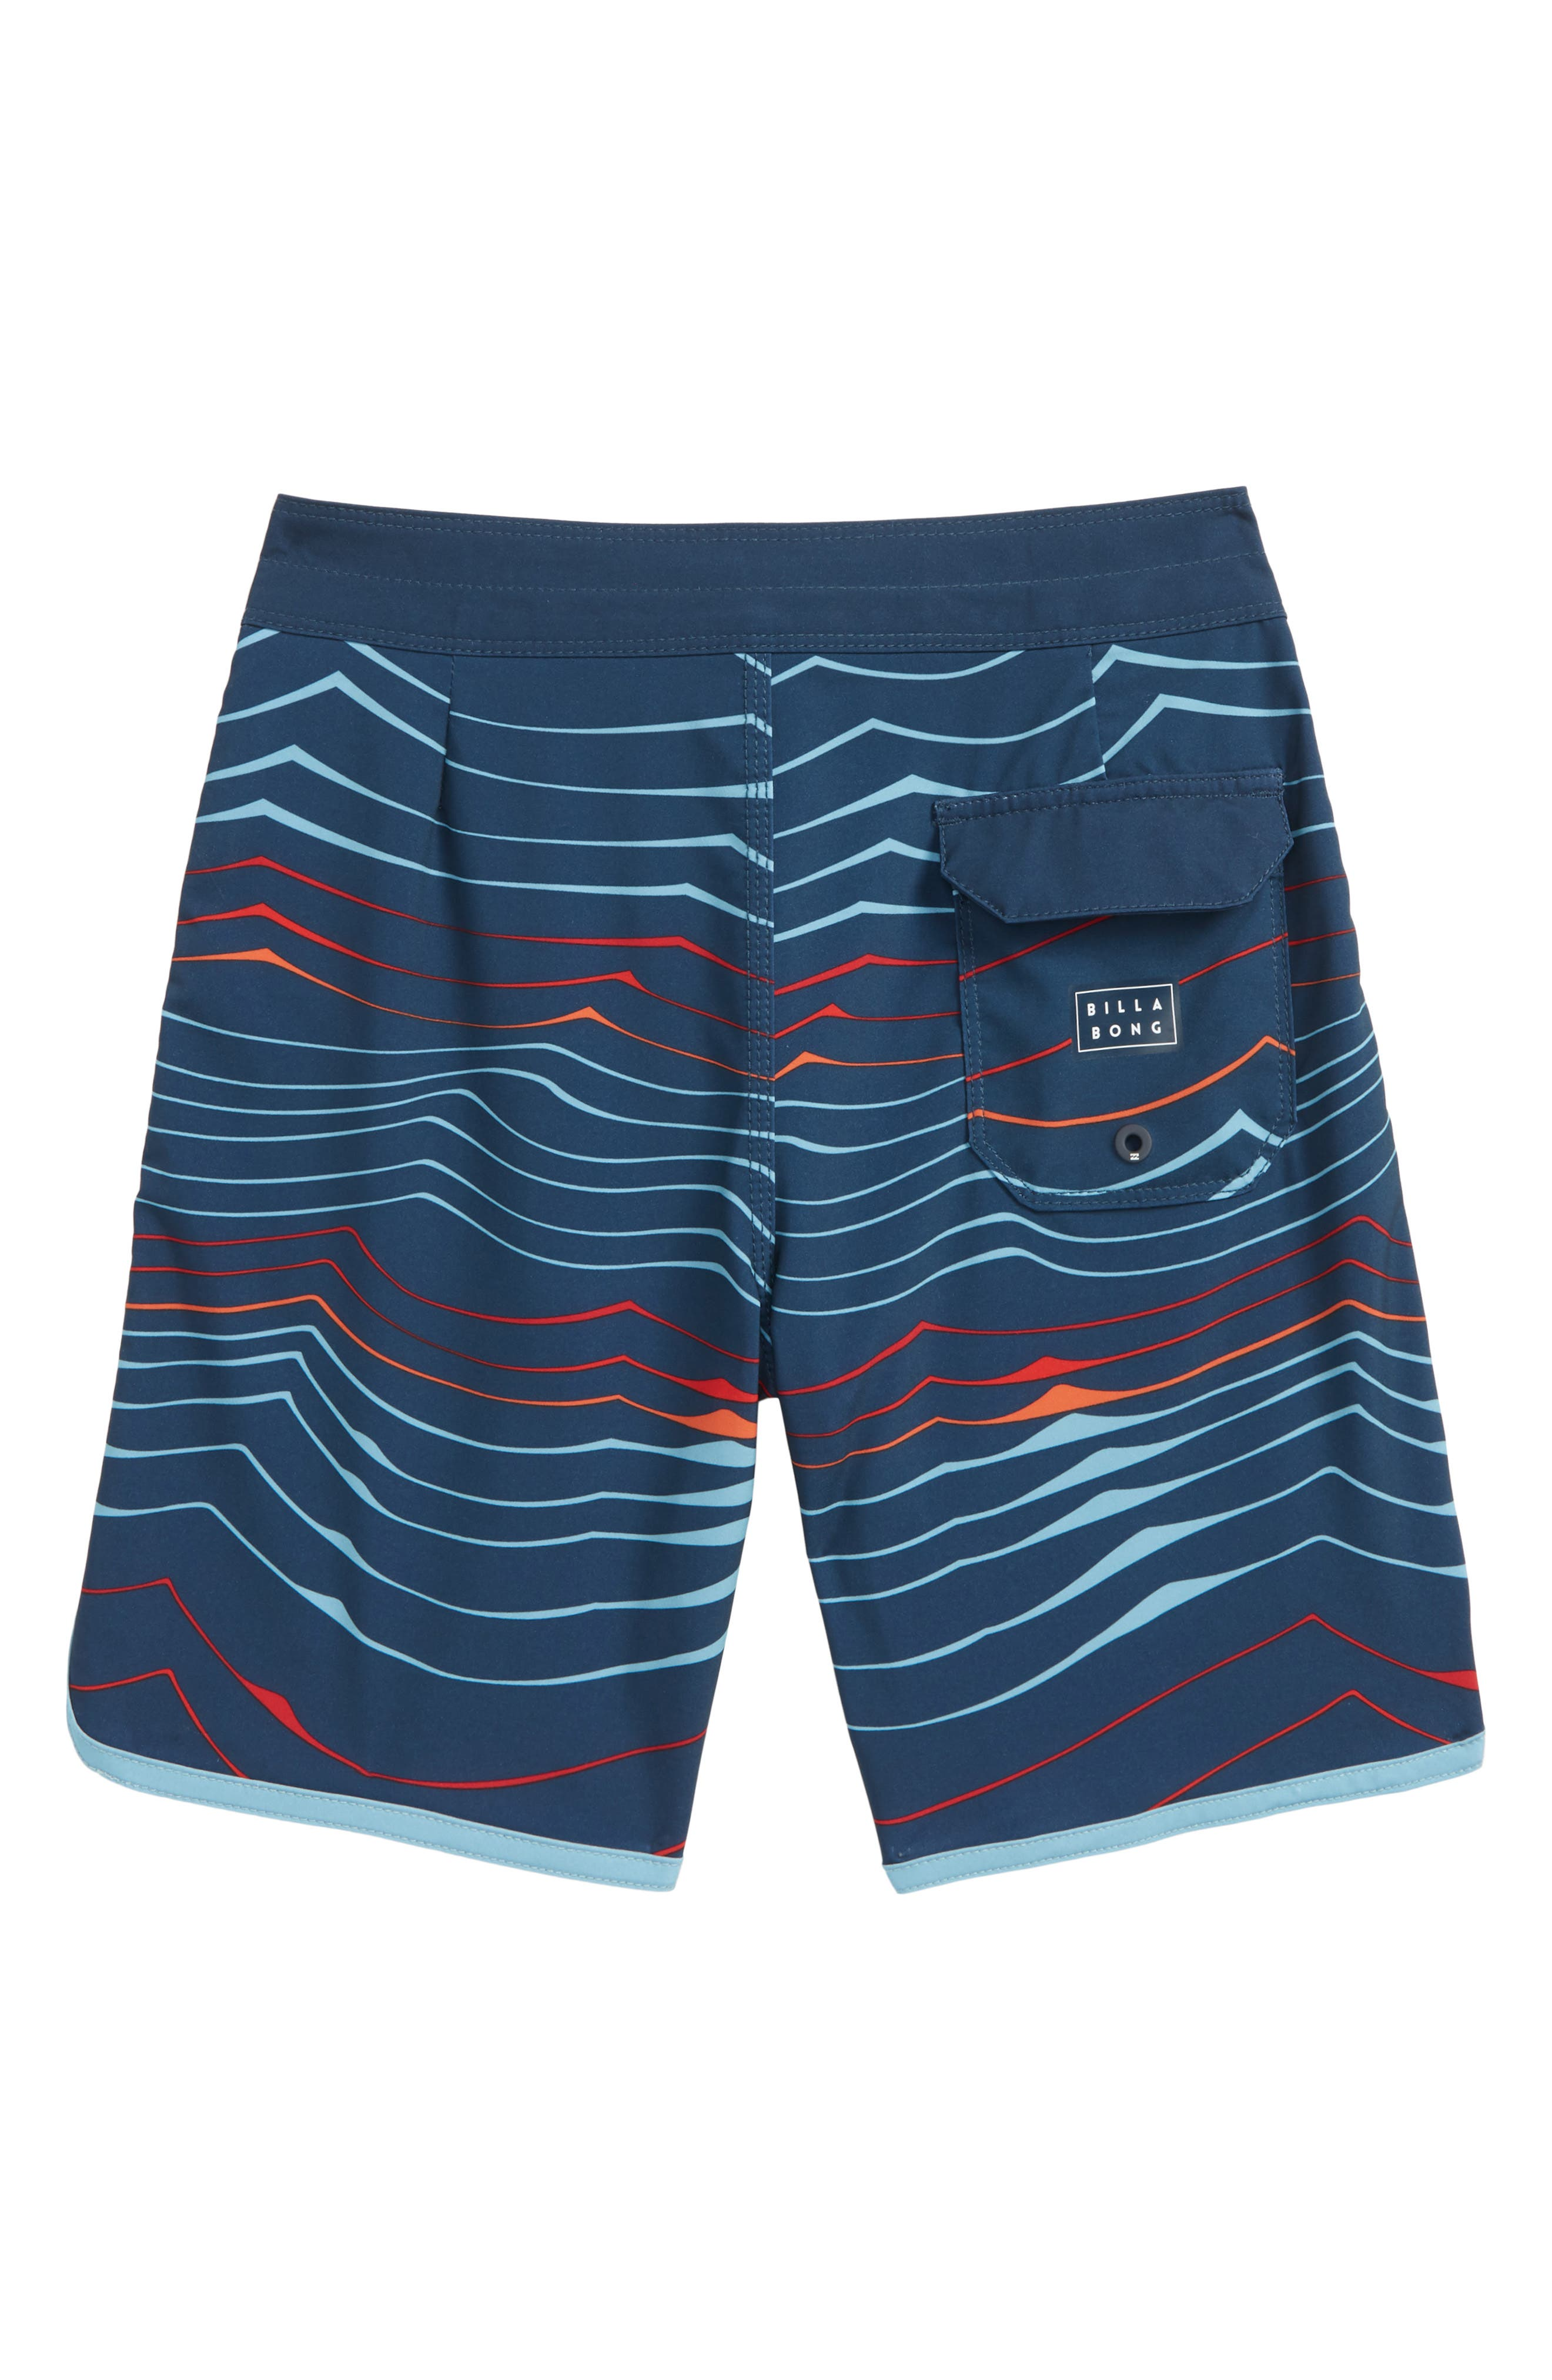 73 X Line Up Board Shorts,                             Alternate thumbnail 2, color,                             415